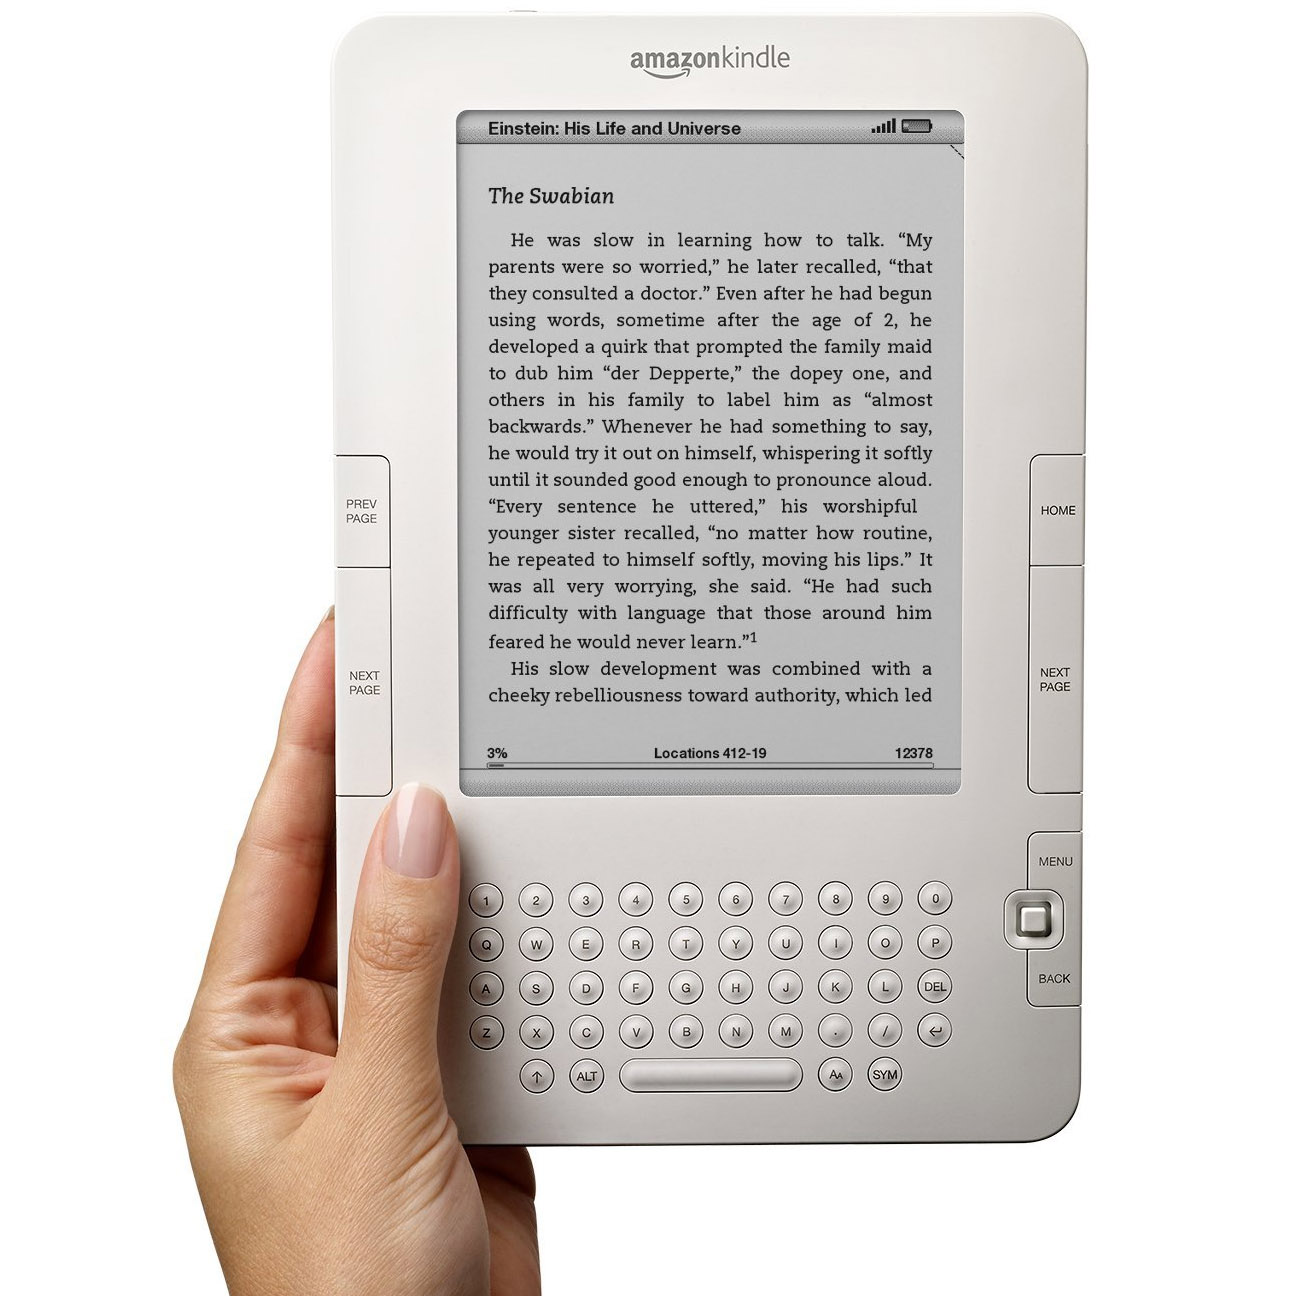 Amazon.es Kindle Libros Mis Impresiones Sobre El Kindle Enrique Dans